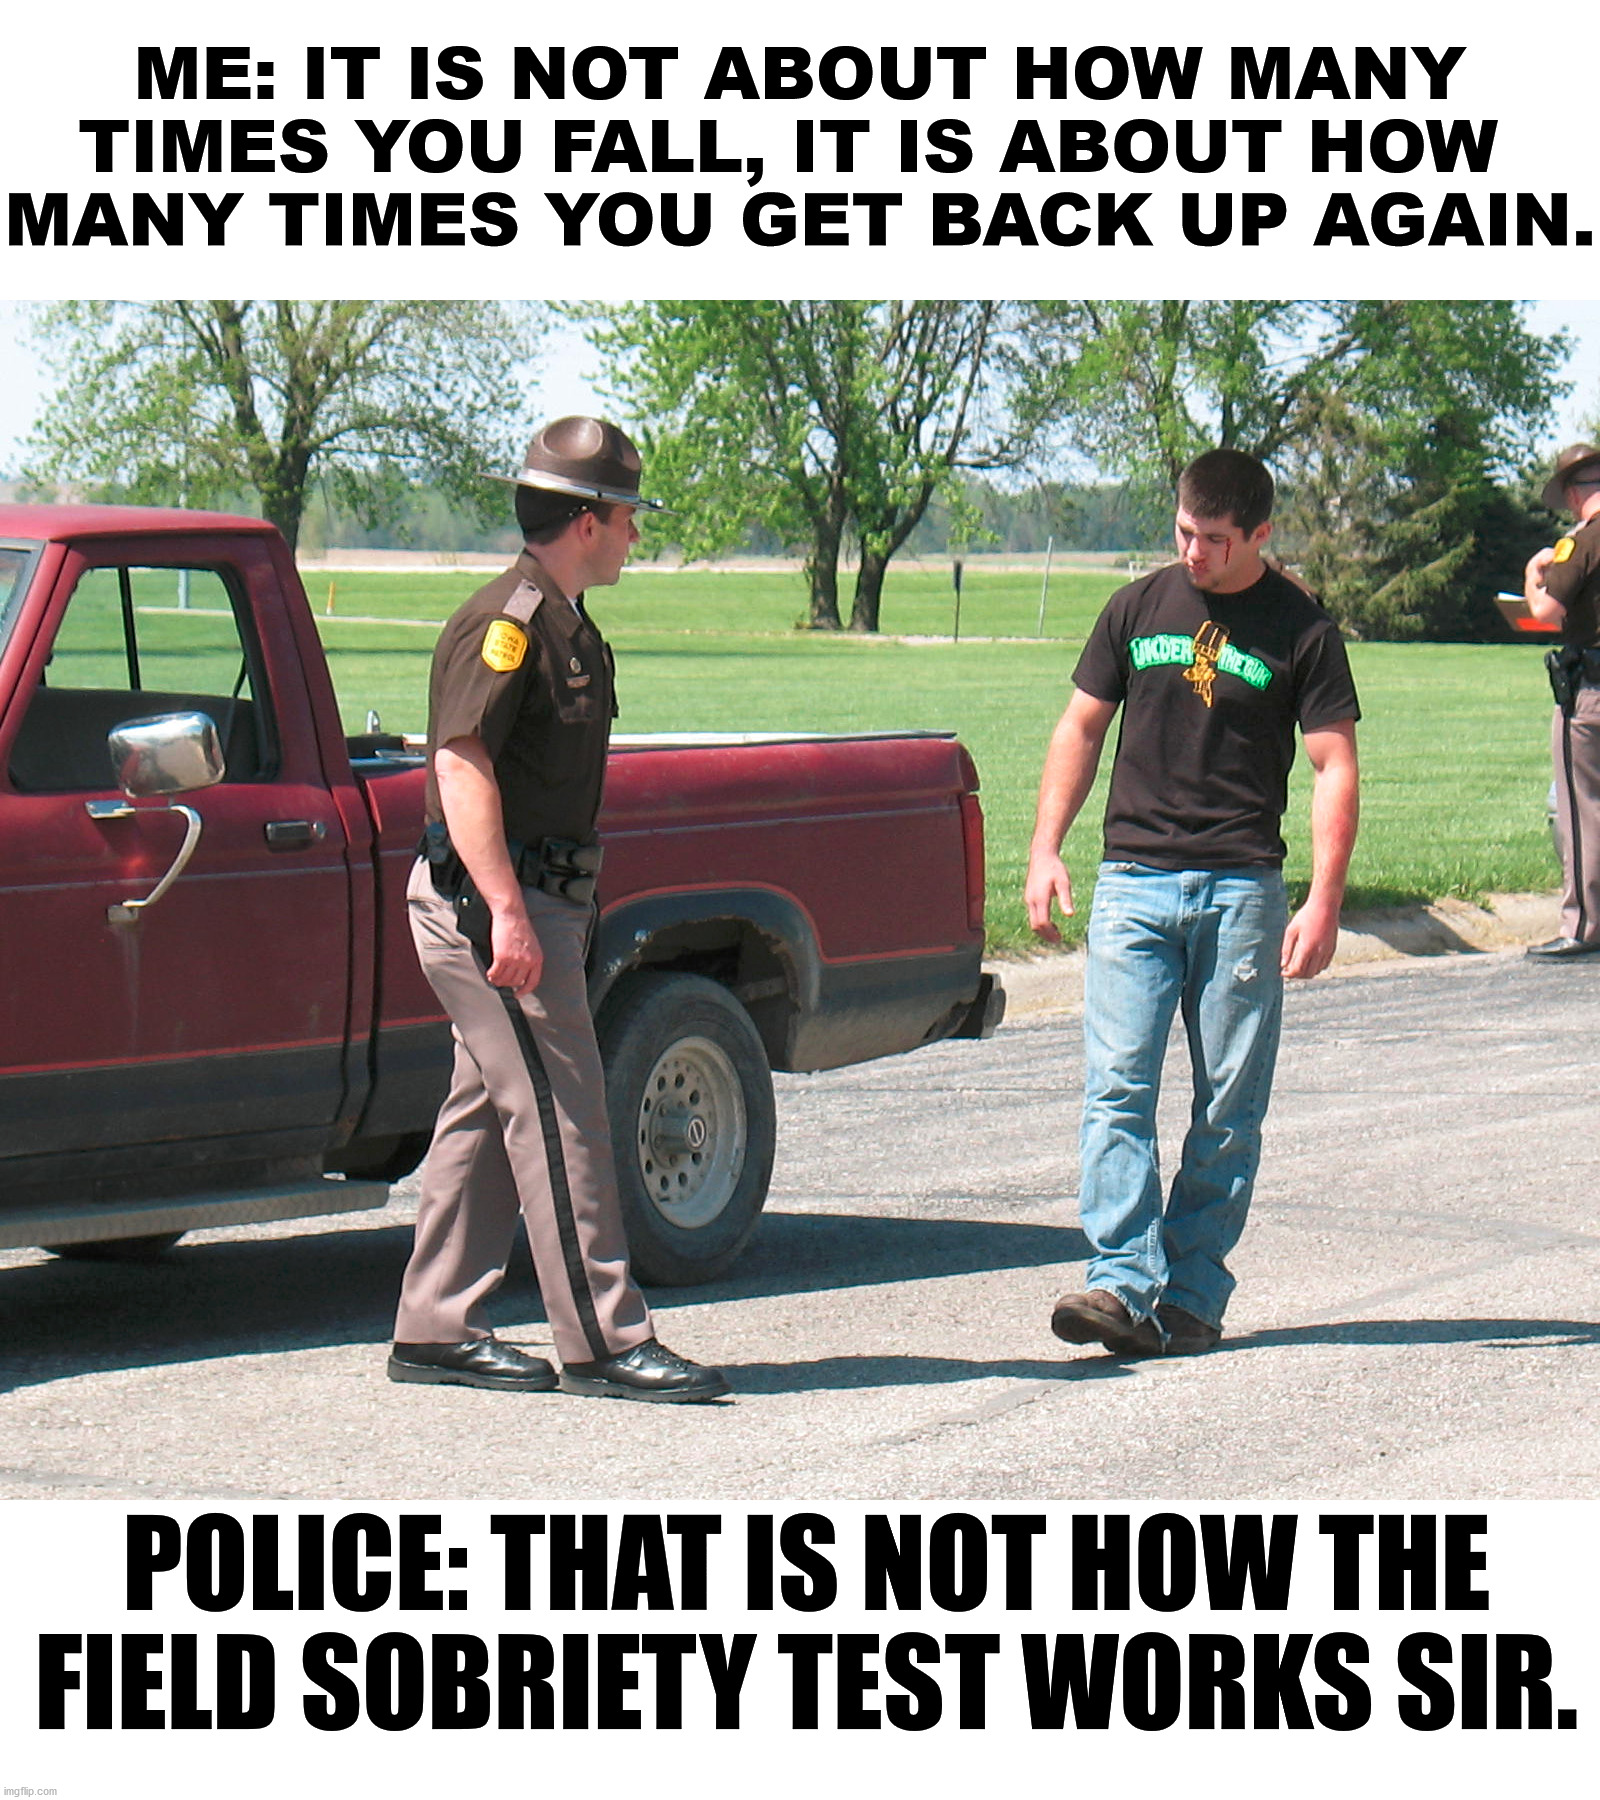 Is this Inspirational? Get back up again. |  ME: IT IS NOT ABOUT HOW MANY TIMES YOU FALL, IT IS ABOUT HOW  MANY TIMES YOU GET BACK UP AGAIN. POLICE: THAT IS NOT HOW THE FIELD SOBRIETY TEST WORKS SIR. | image tagged in police,sobriety,test,drunk guy | made w/ Imgflip meme maker